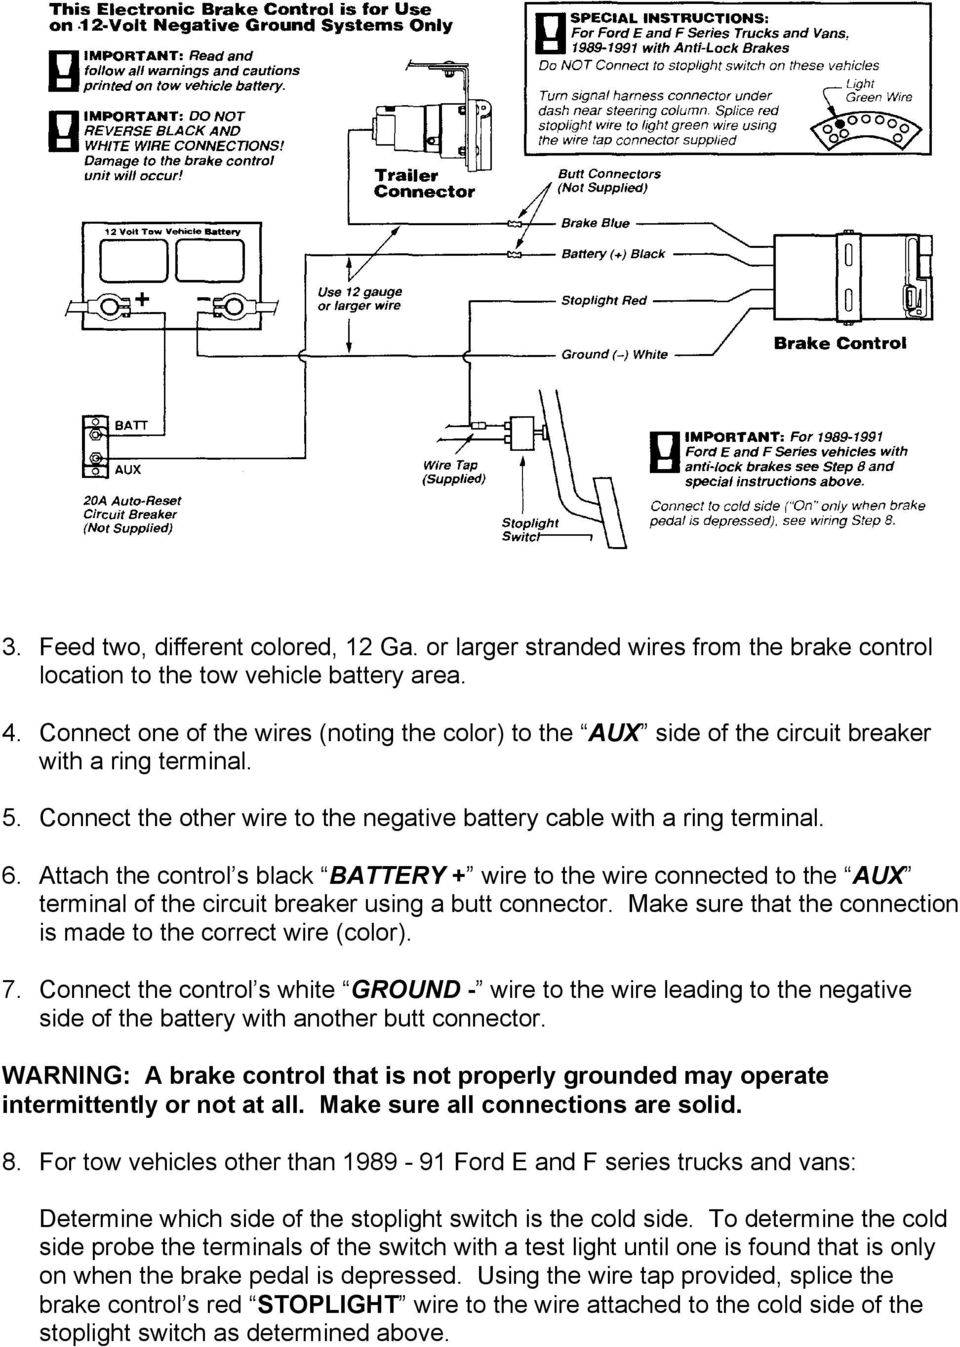 Gmos 04 Wiring Diagram C6 Corvette Installation Axxess C On Instructions For The And Operation Of Activator Pdf